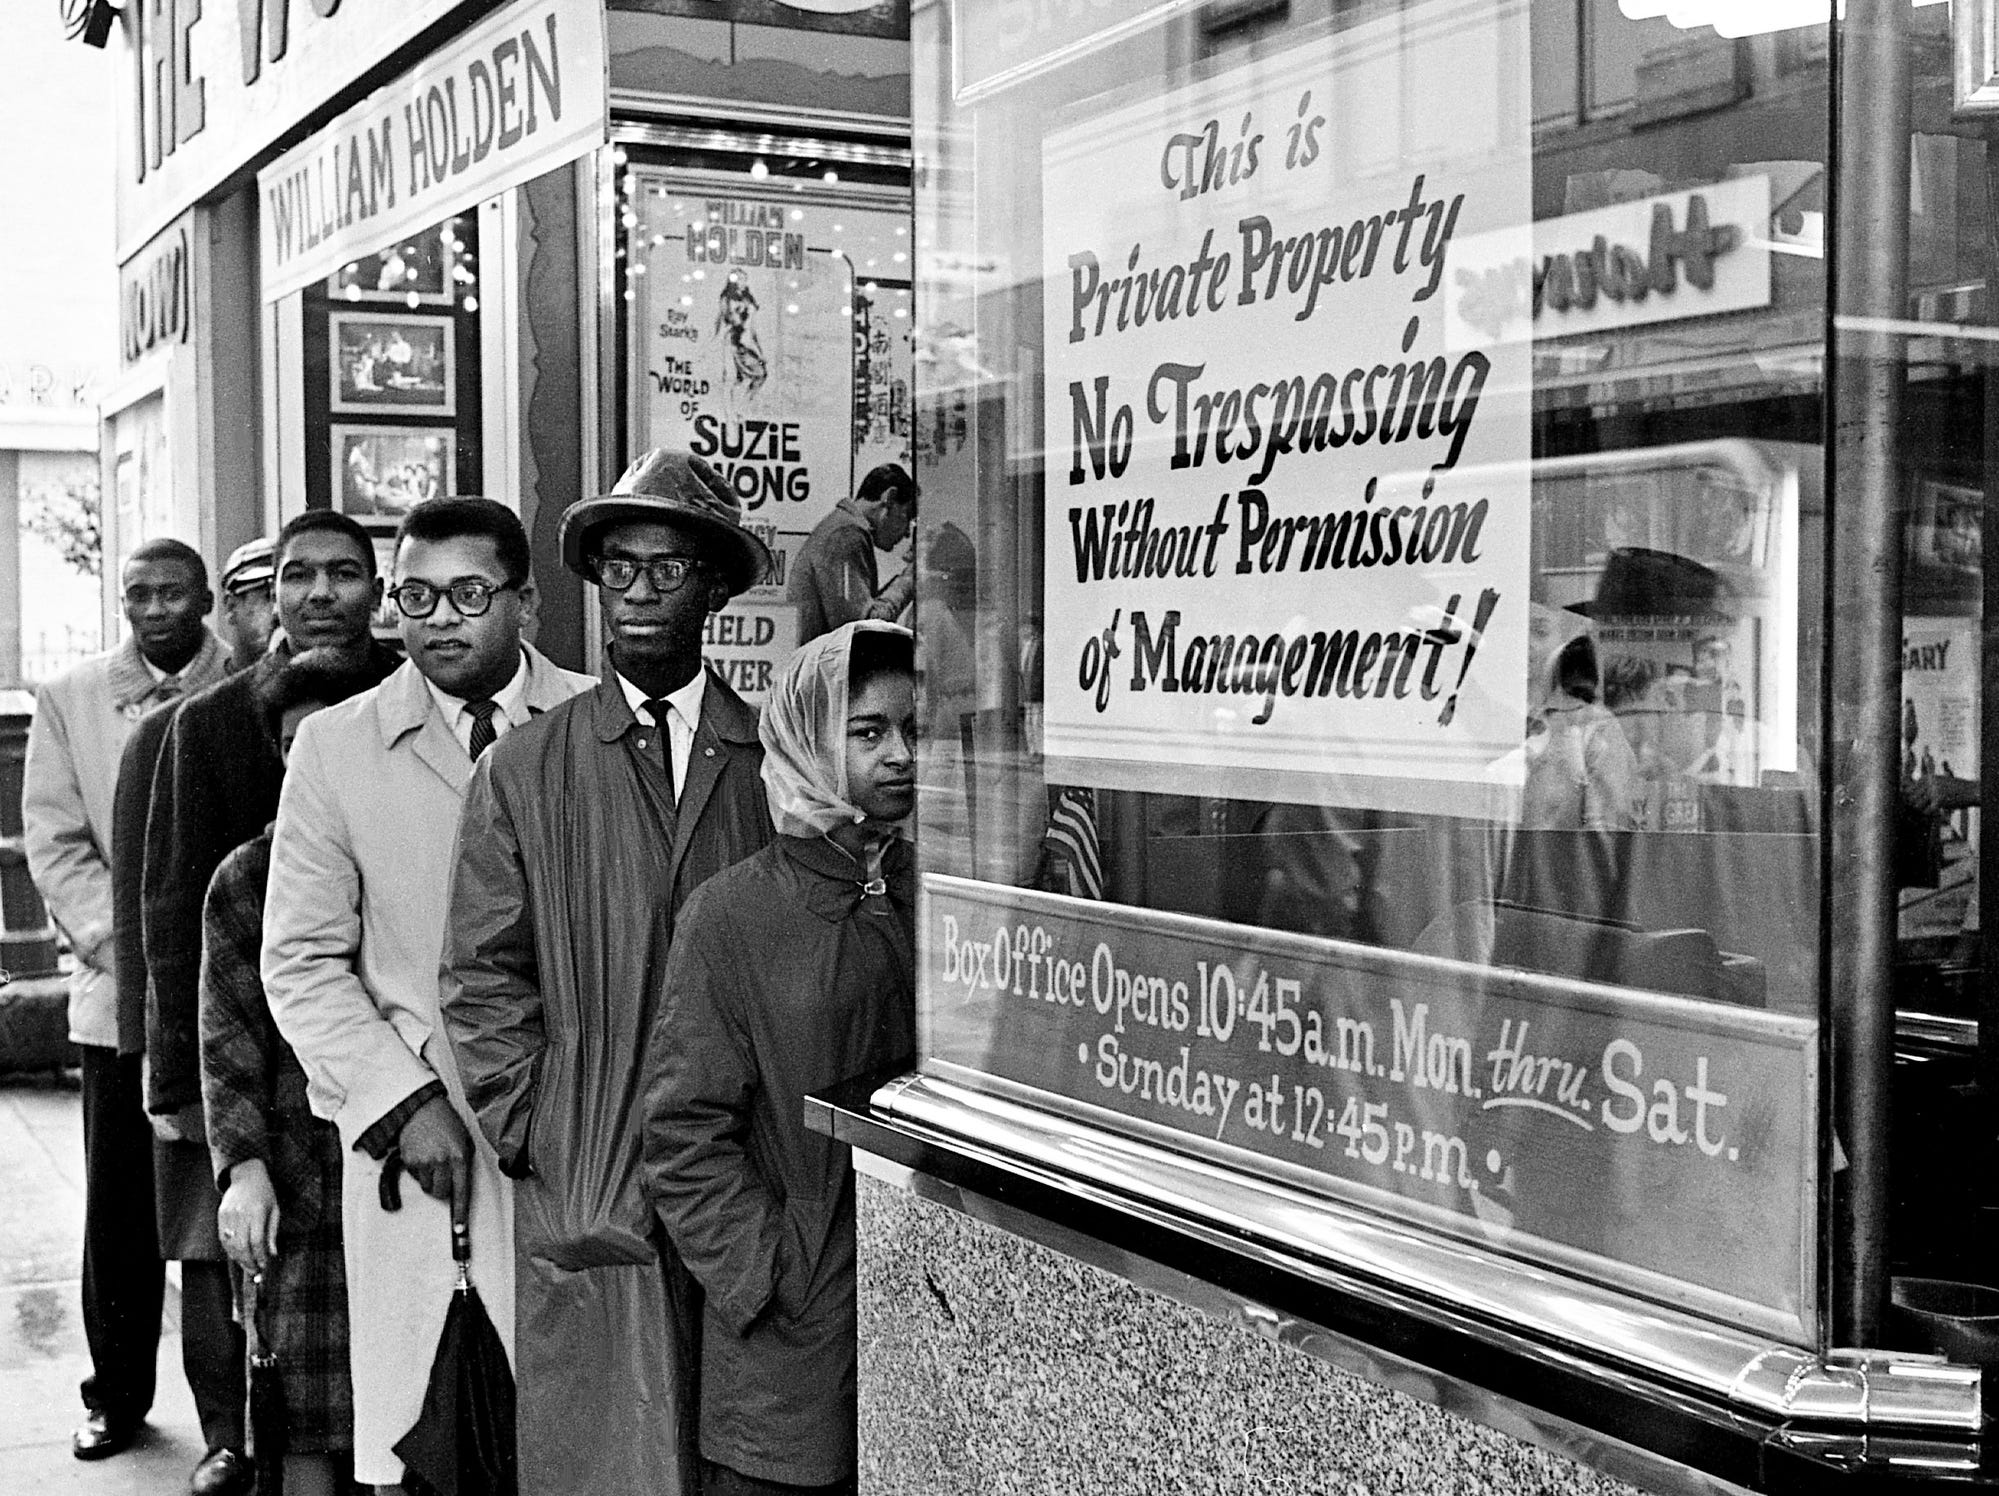 A small group of demonstrators, mostly black college students, try to gain admittance to the Tennessee Theater in downtown Nashville on Feb. 21, 1961. Aiding the students is the Rev. James Lawson, third from right.